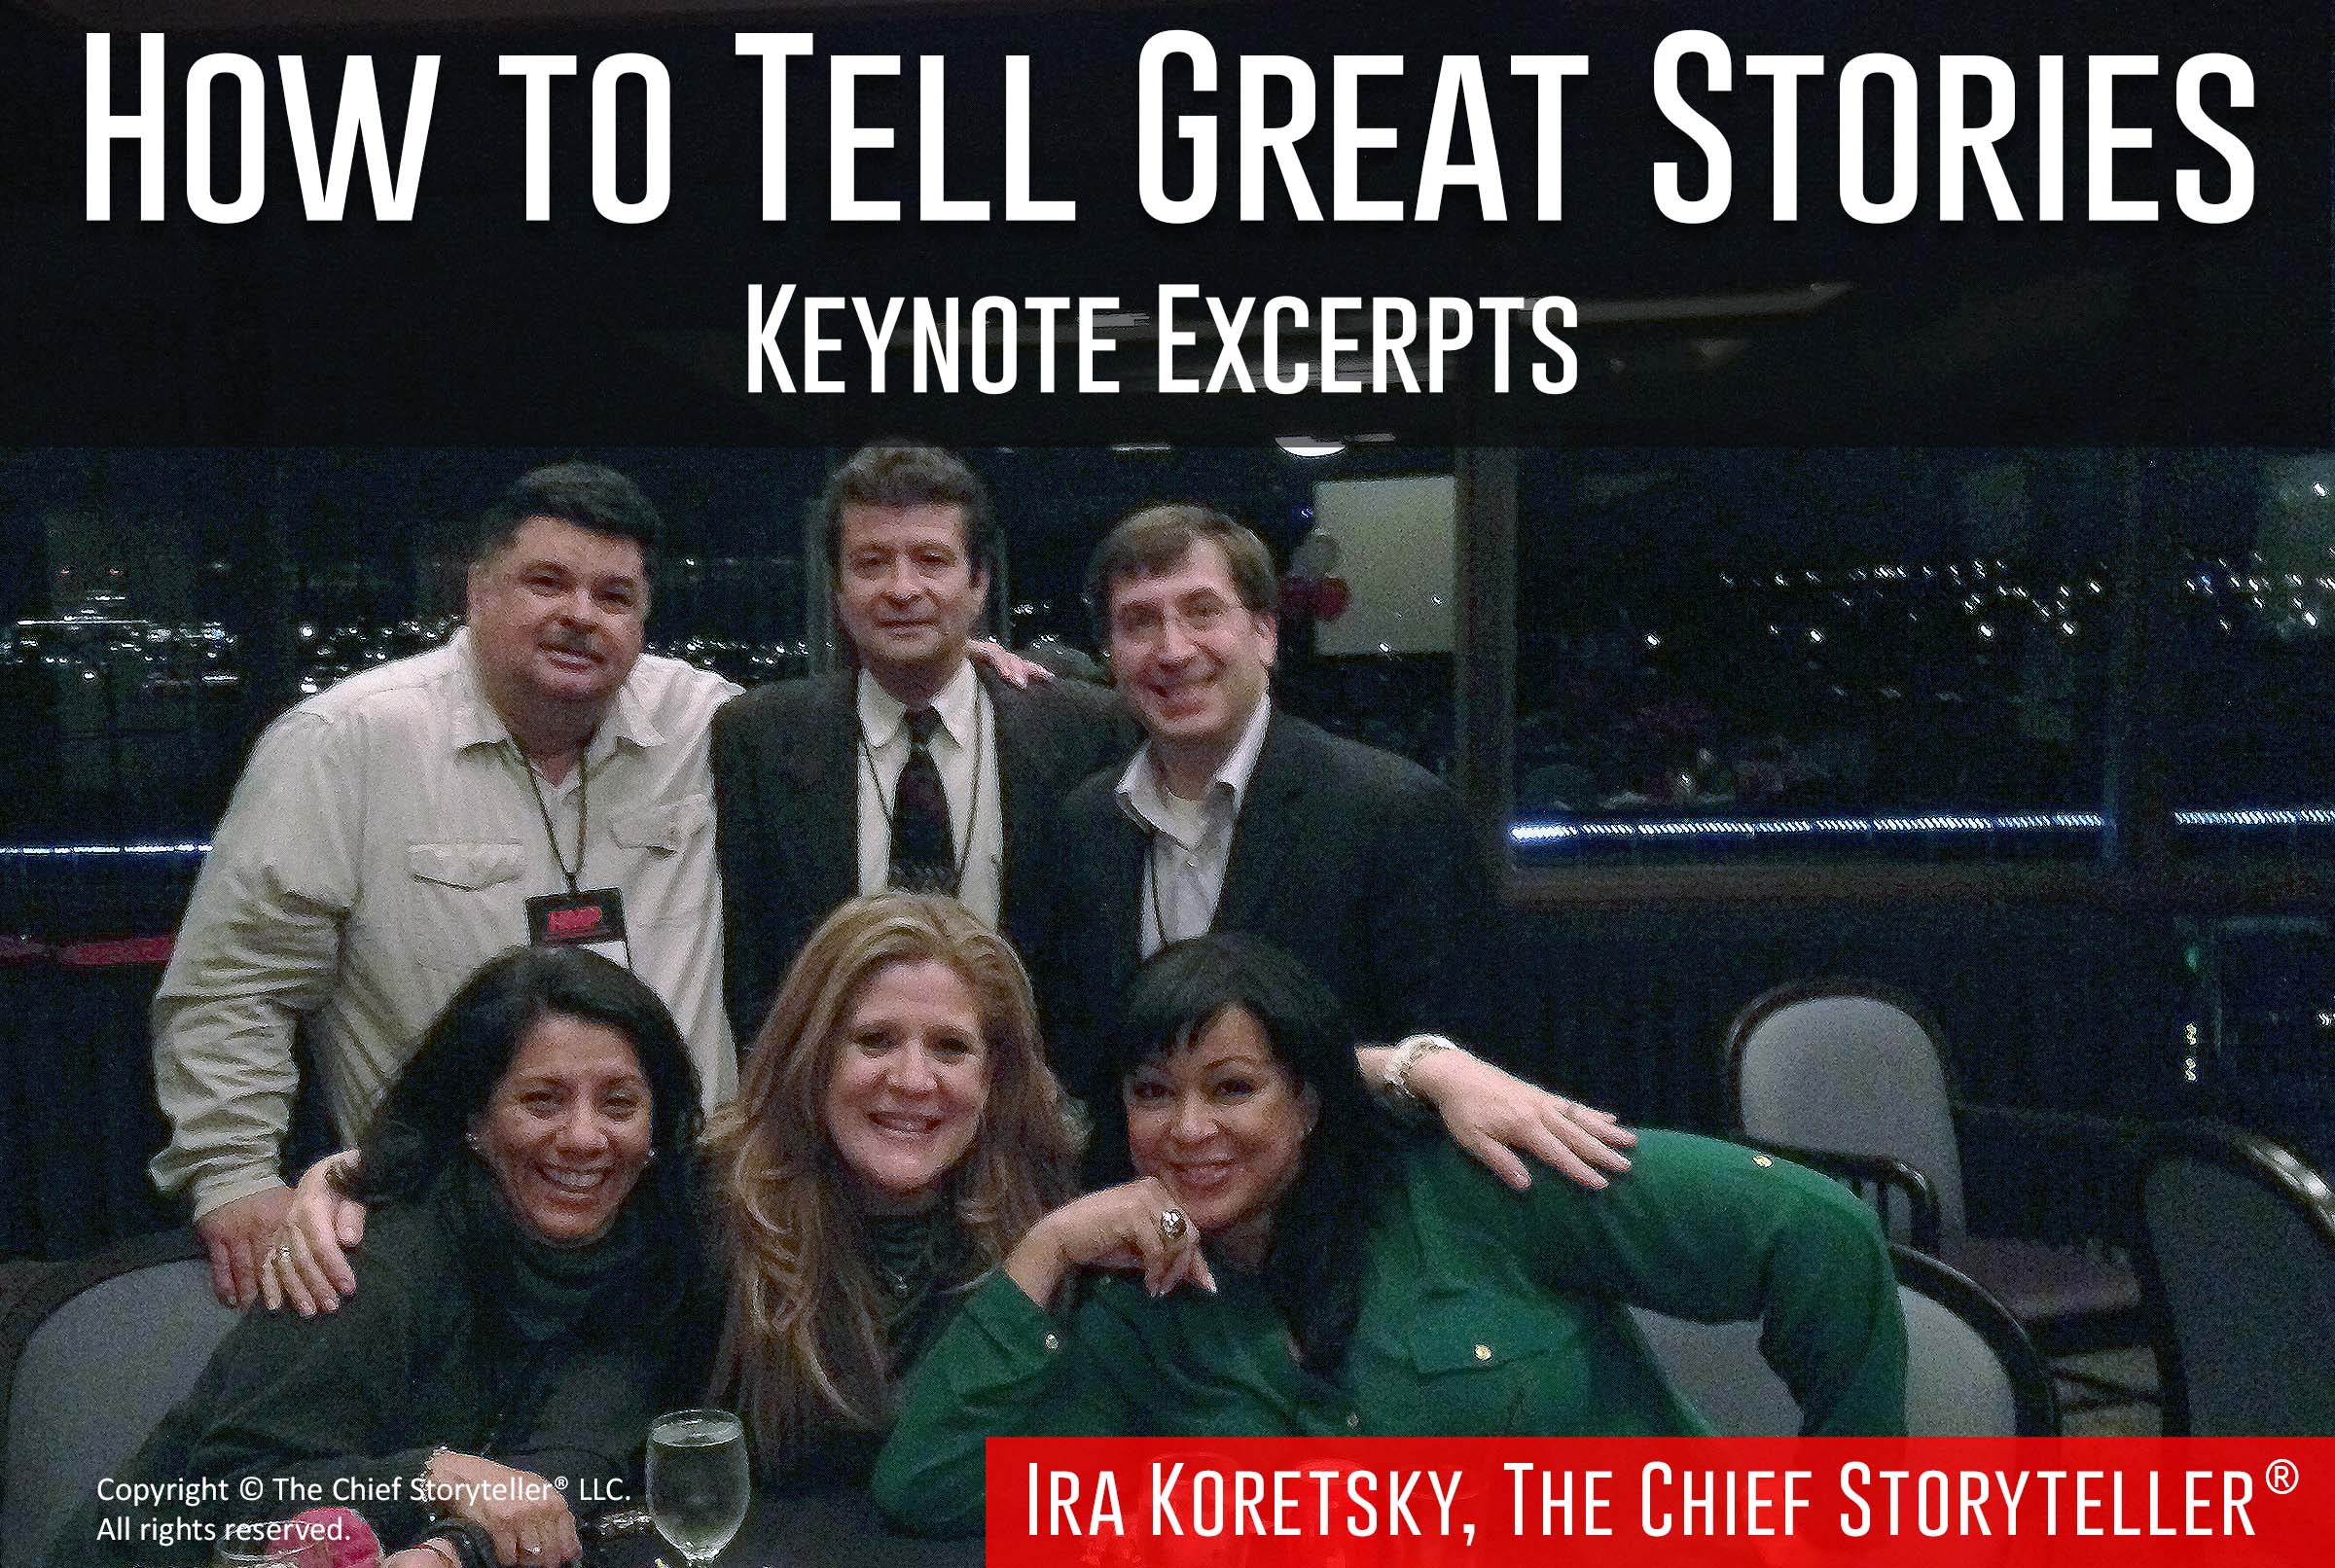 How to Tell Great Stories